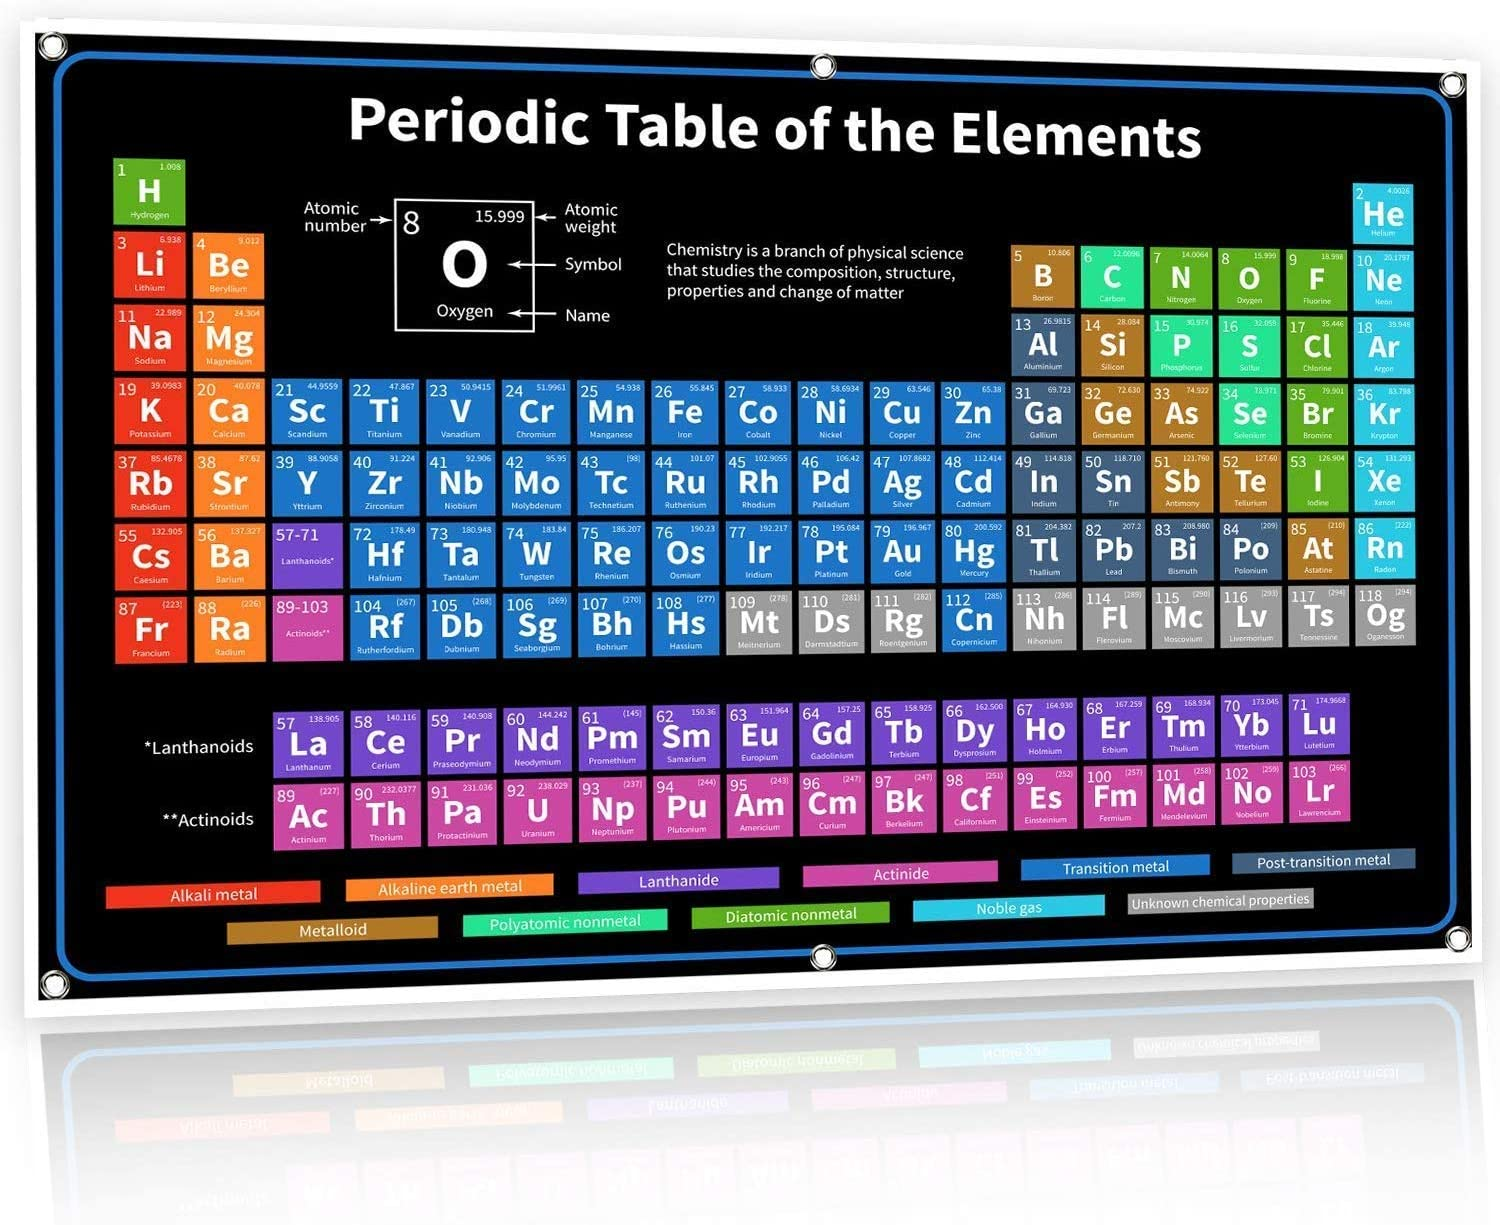 2020 The Periodic Table of Elements Poster - 36 inch x 24 inch Black Chemistry Chart for Teachers, Students, Classroom, Home - Reusable Science Banner - Newest 118 Elements - Atomic Number, Weight, Symbol, Name